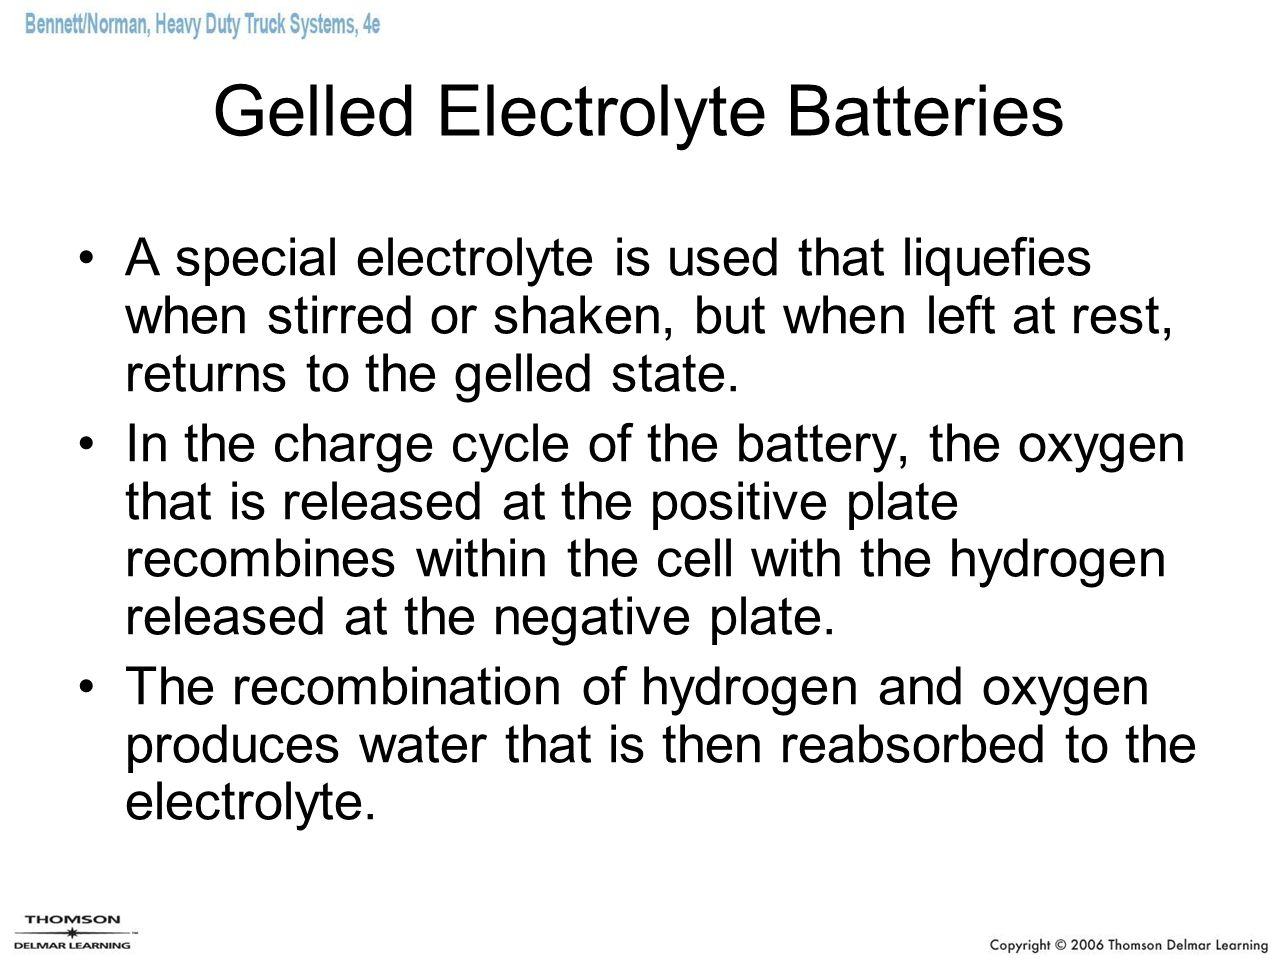 Gelled Electrolyte Batteries